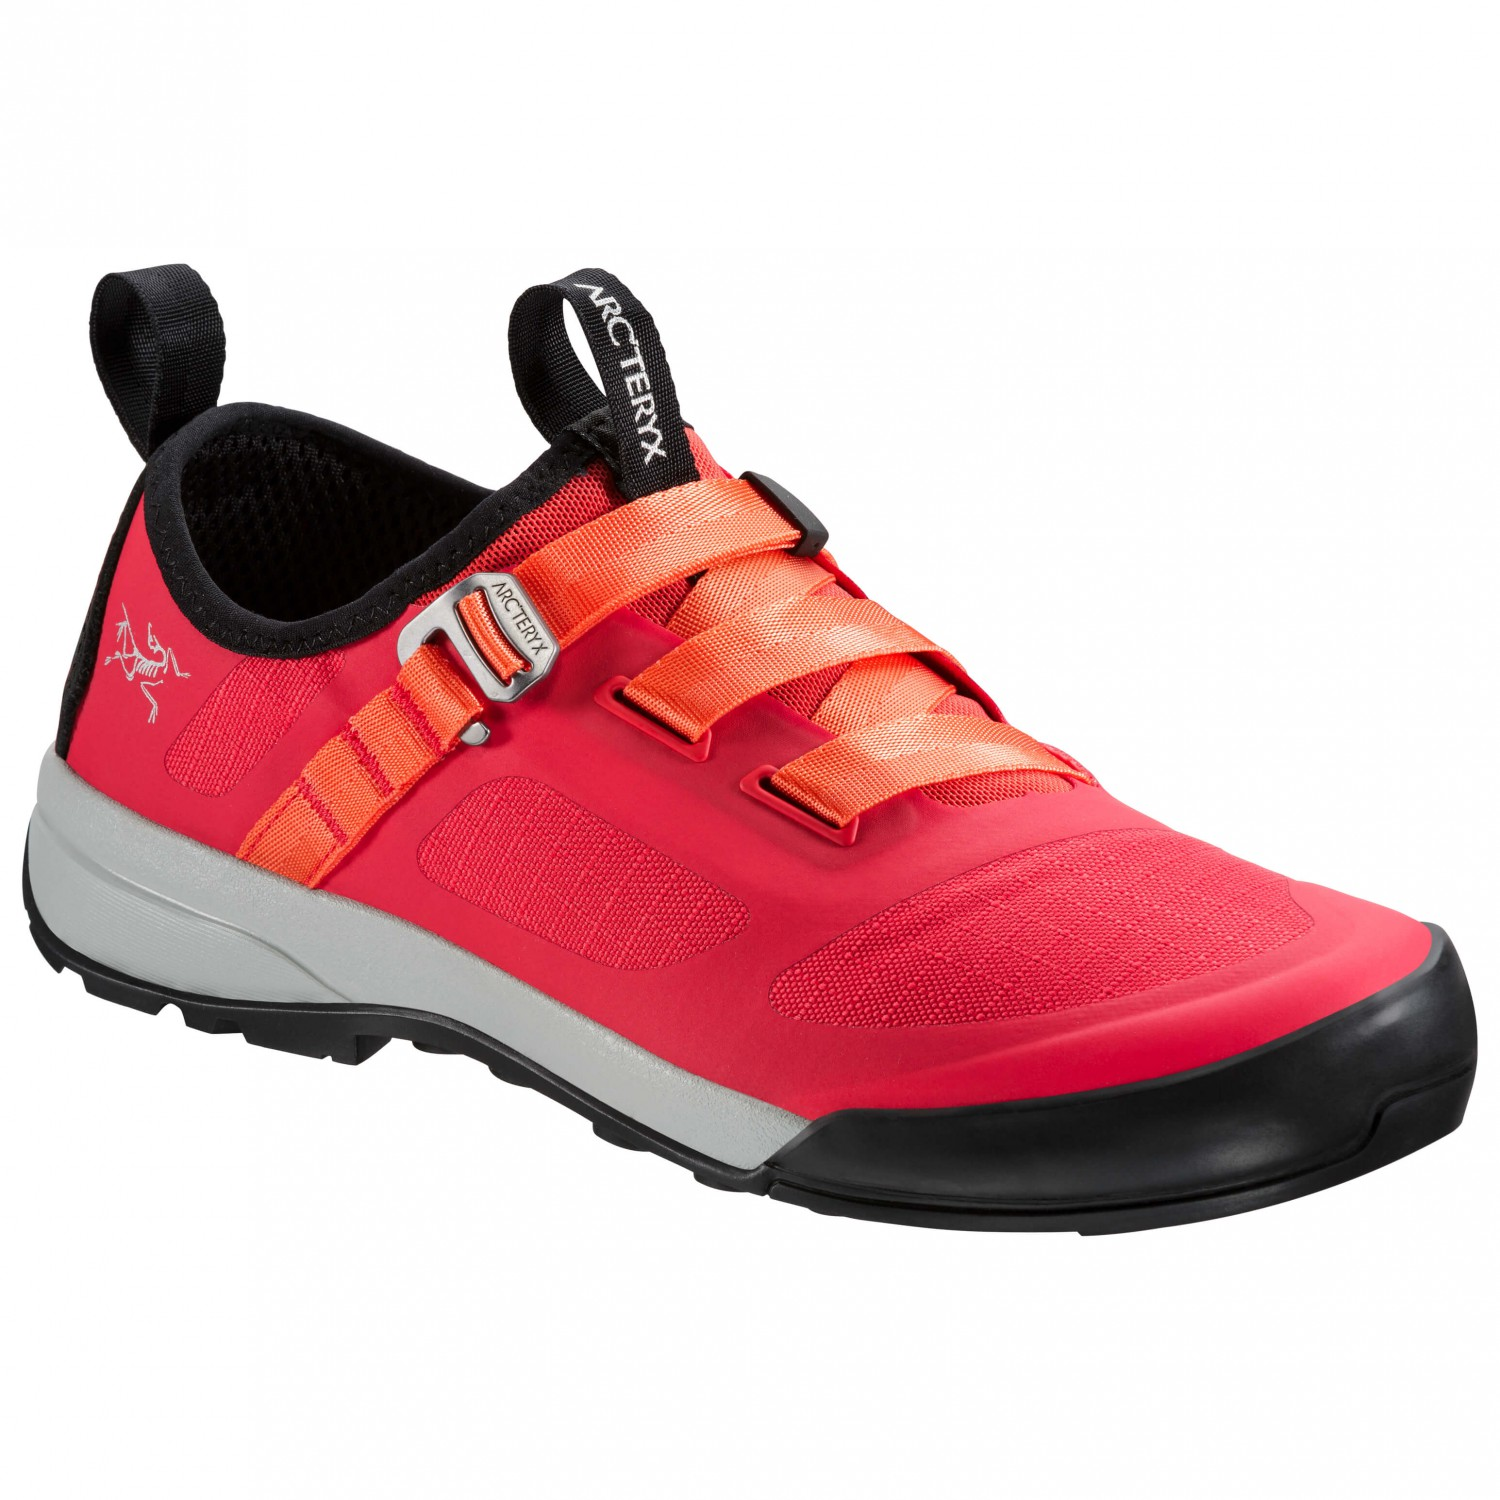 Arc'teryx - Women's Arakys - Approachschuhe Dragon Fruit / Autumn Coral